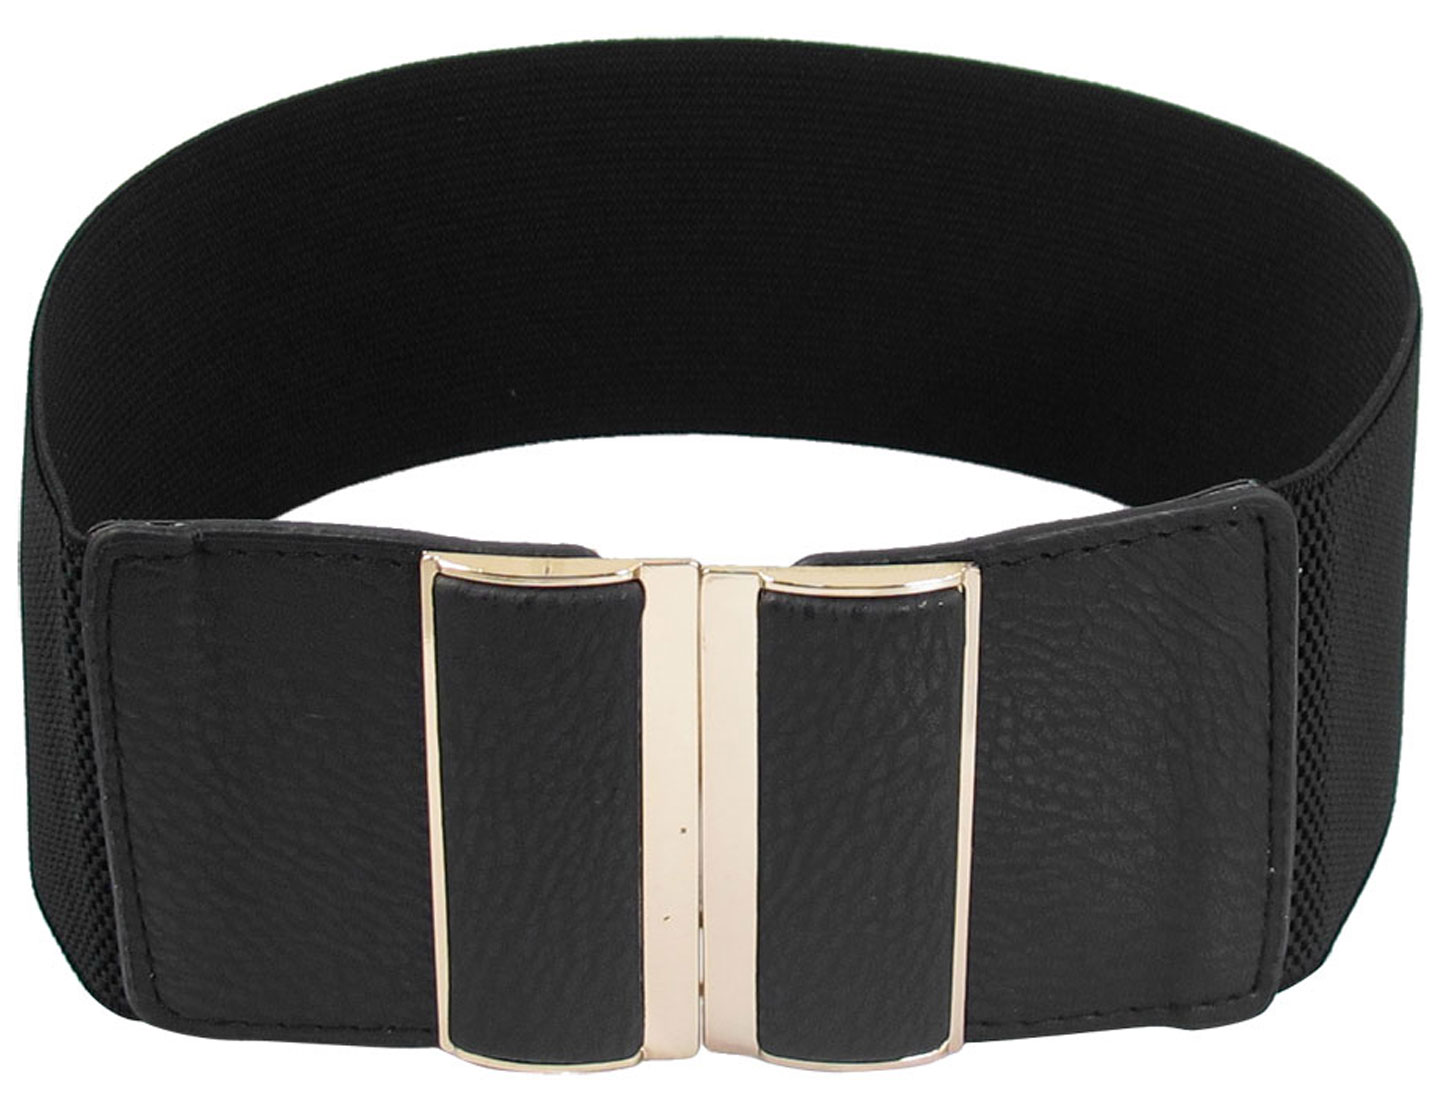 Black Faux Leather Elastic Band Interlocking Buckle Waist Belt 3 Inches Width for Women